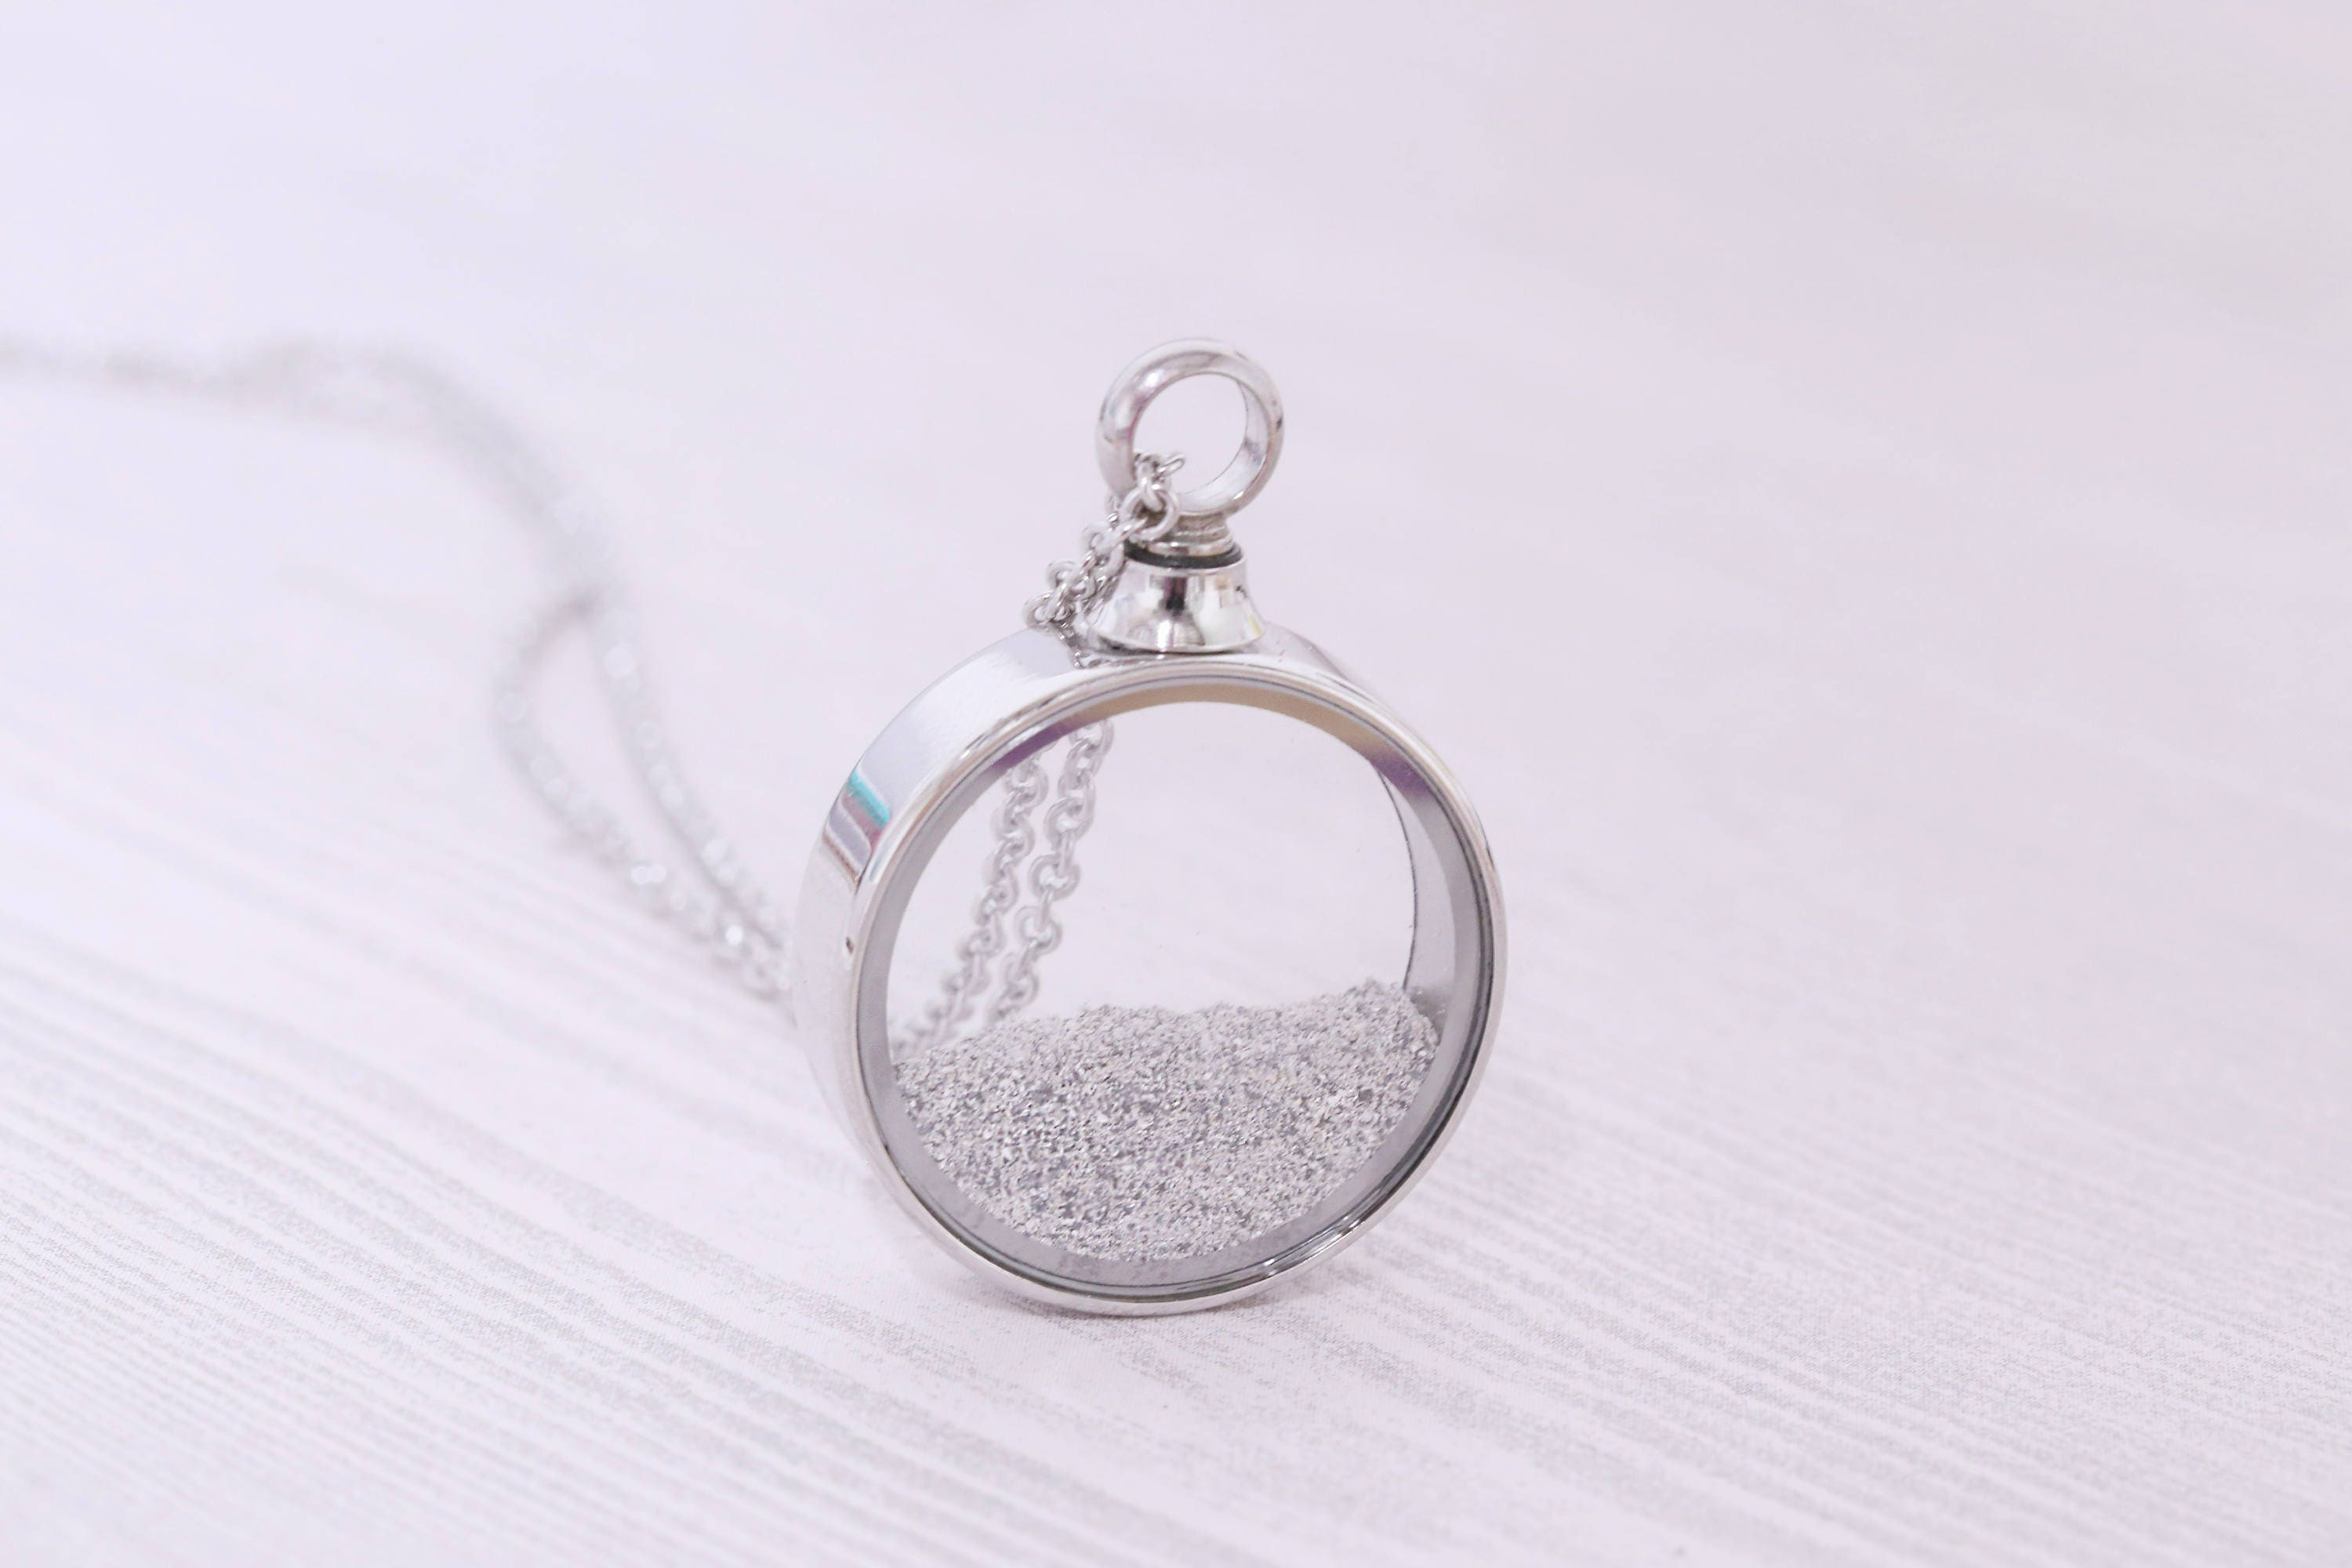 birds cremation steel ash of in keepsake pendant memory summer holder stainless one spring necklace springsummer loved p